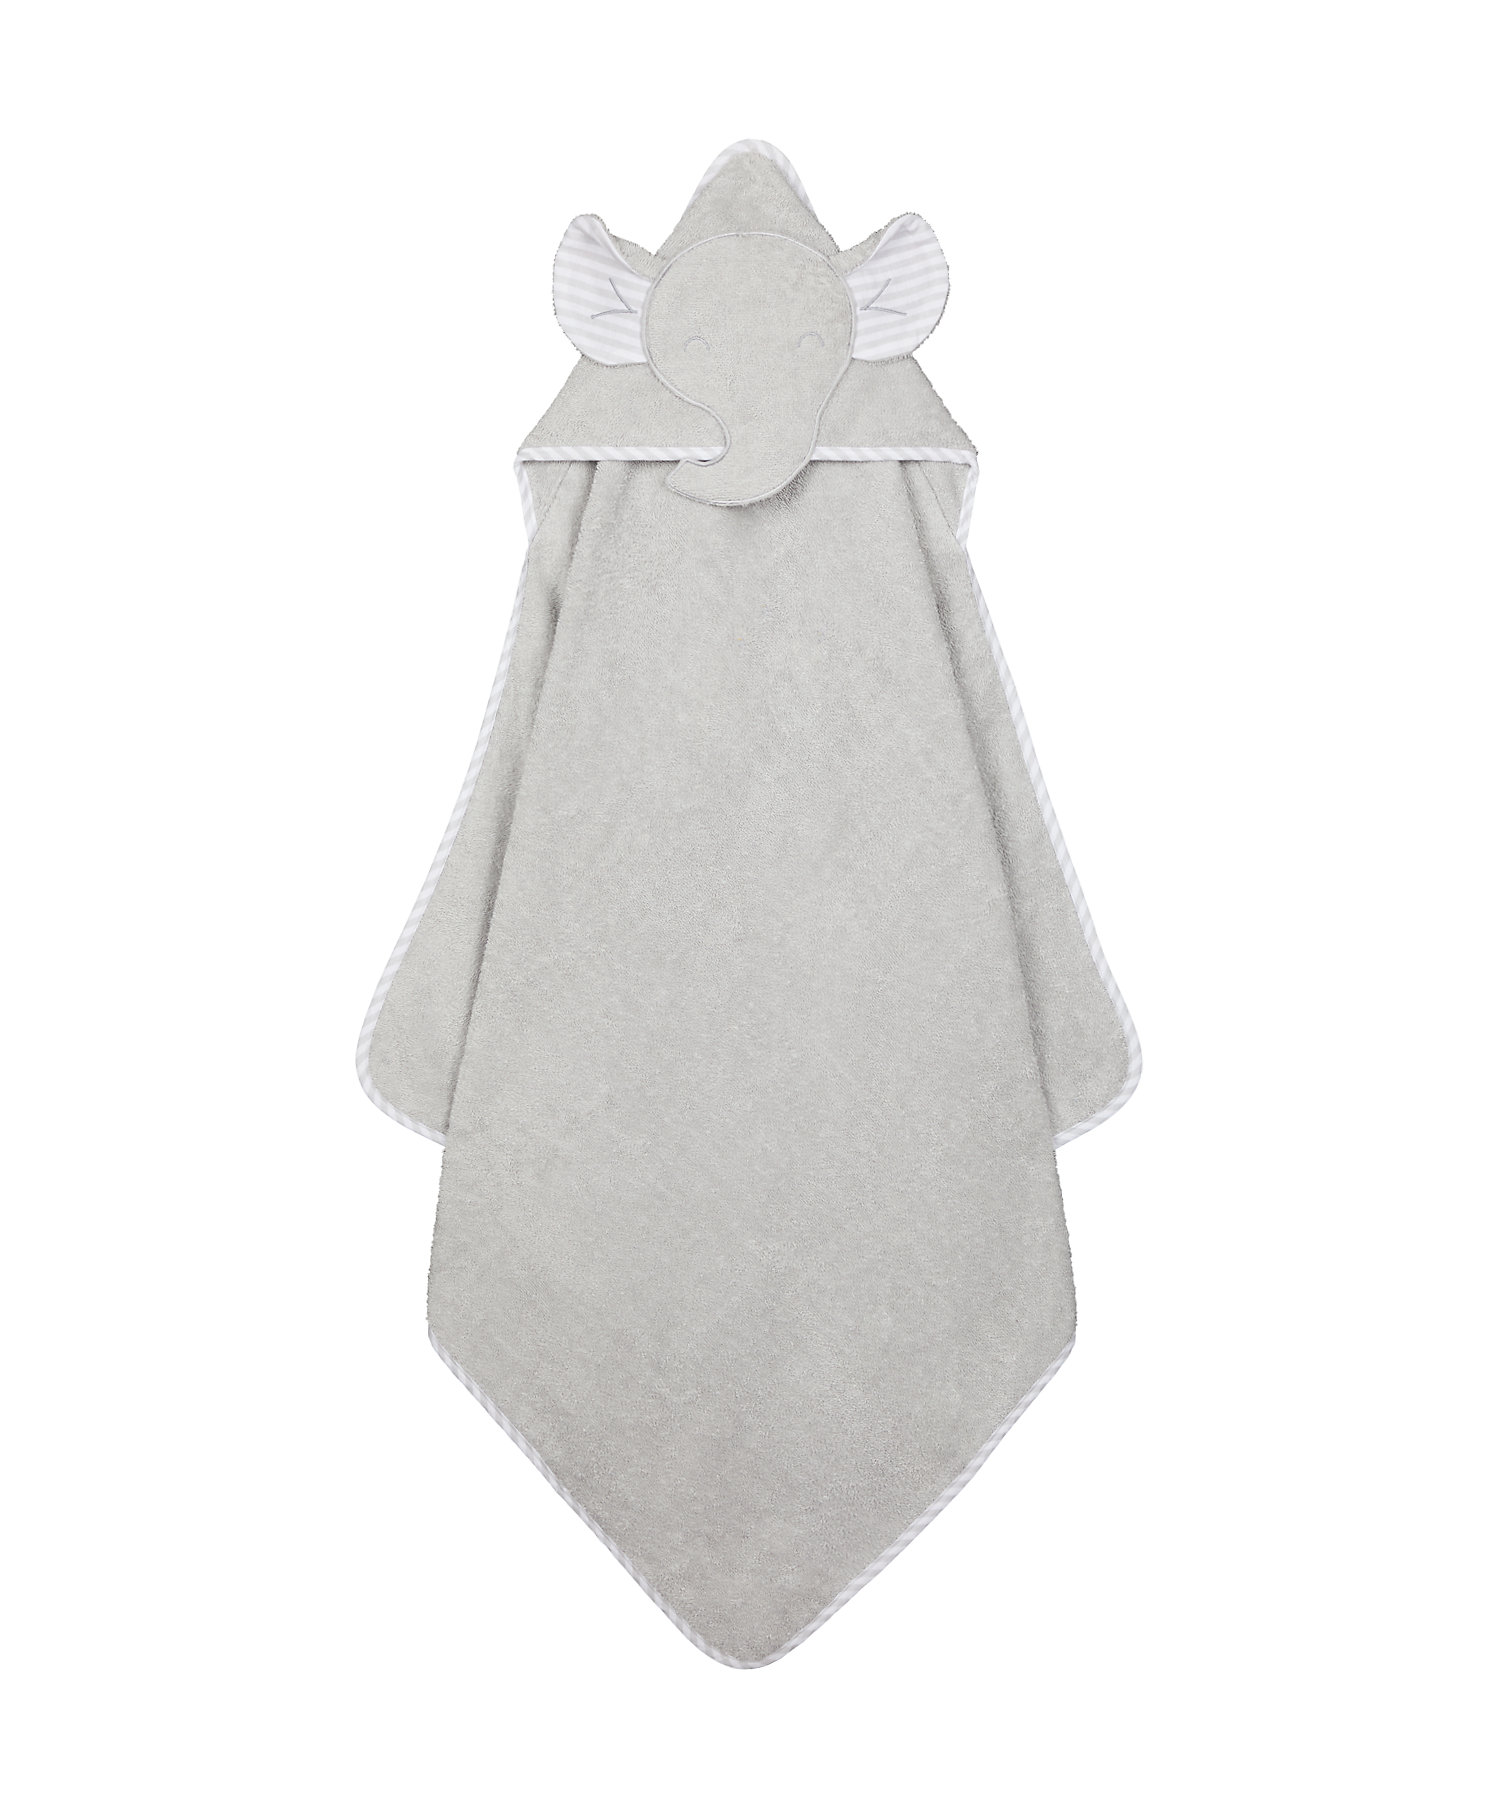 Mothercare | Mothercare Character Cuddle and Dry Baby Towels Elephant Blue